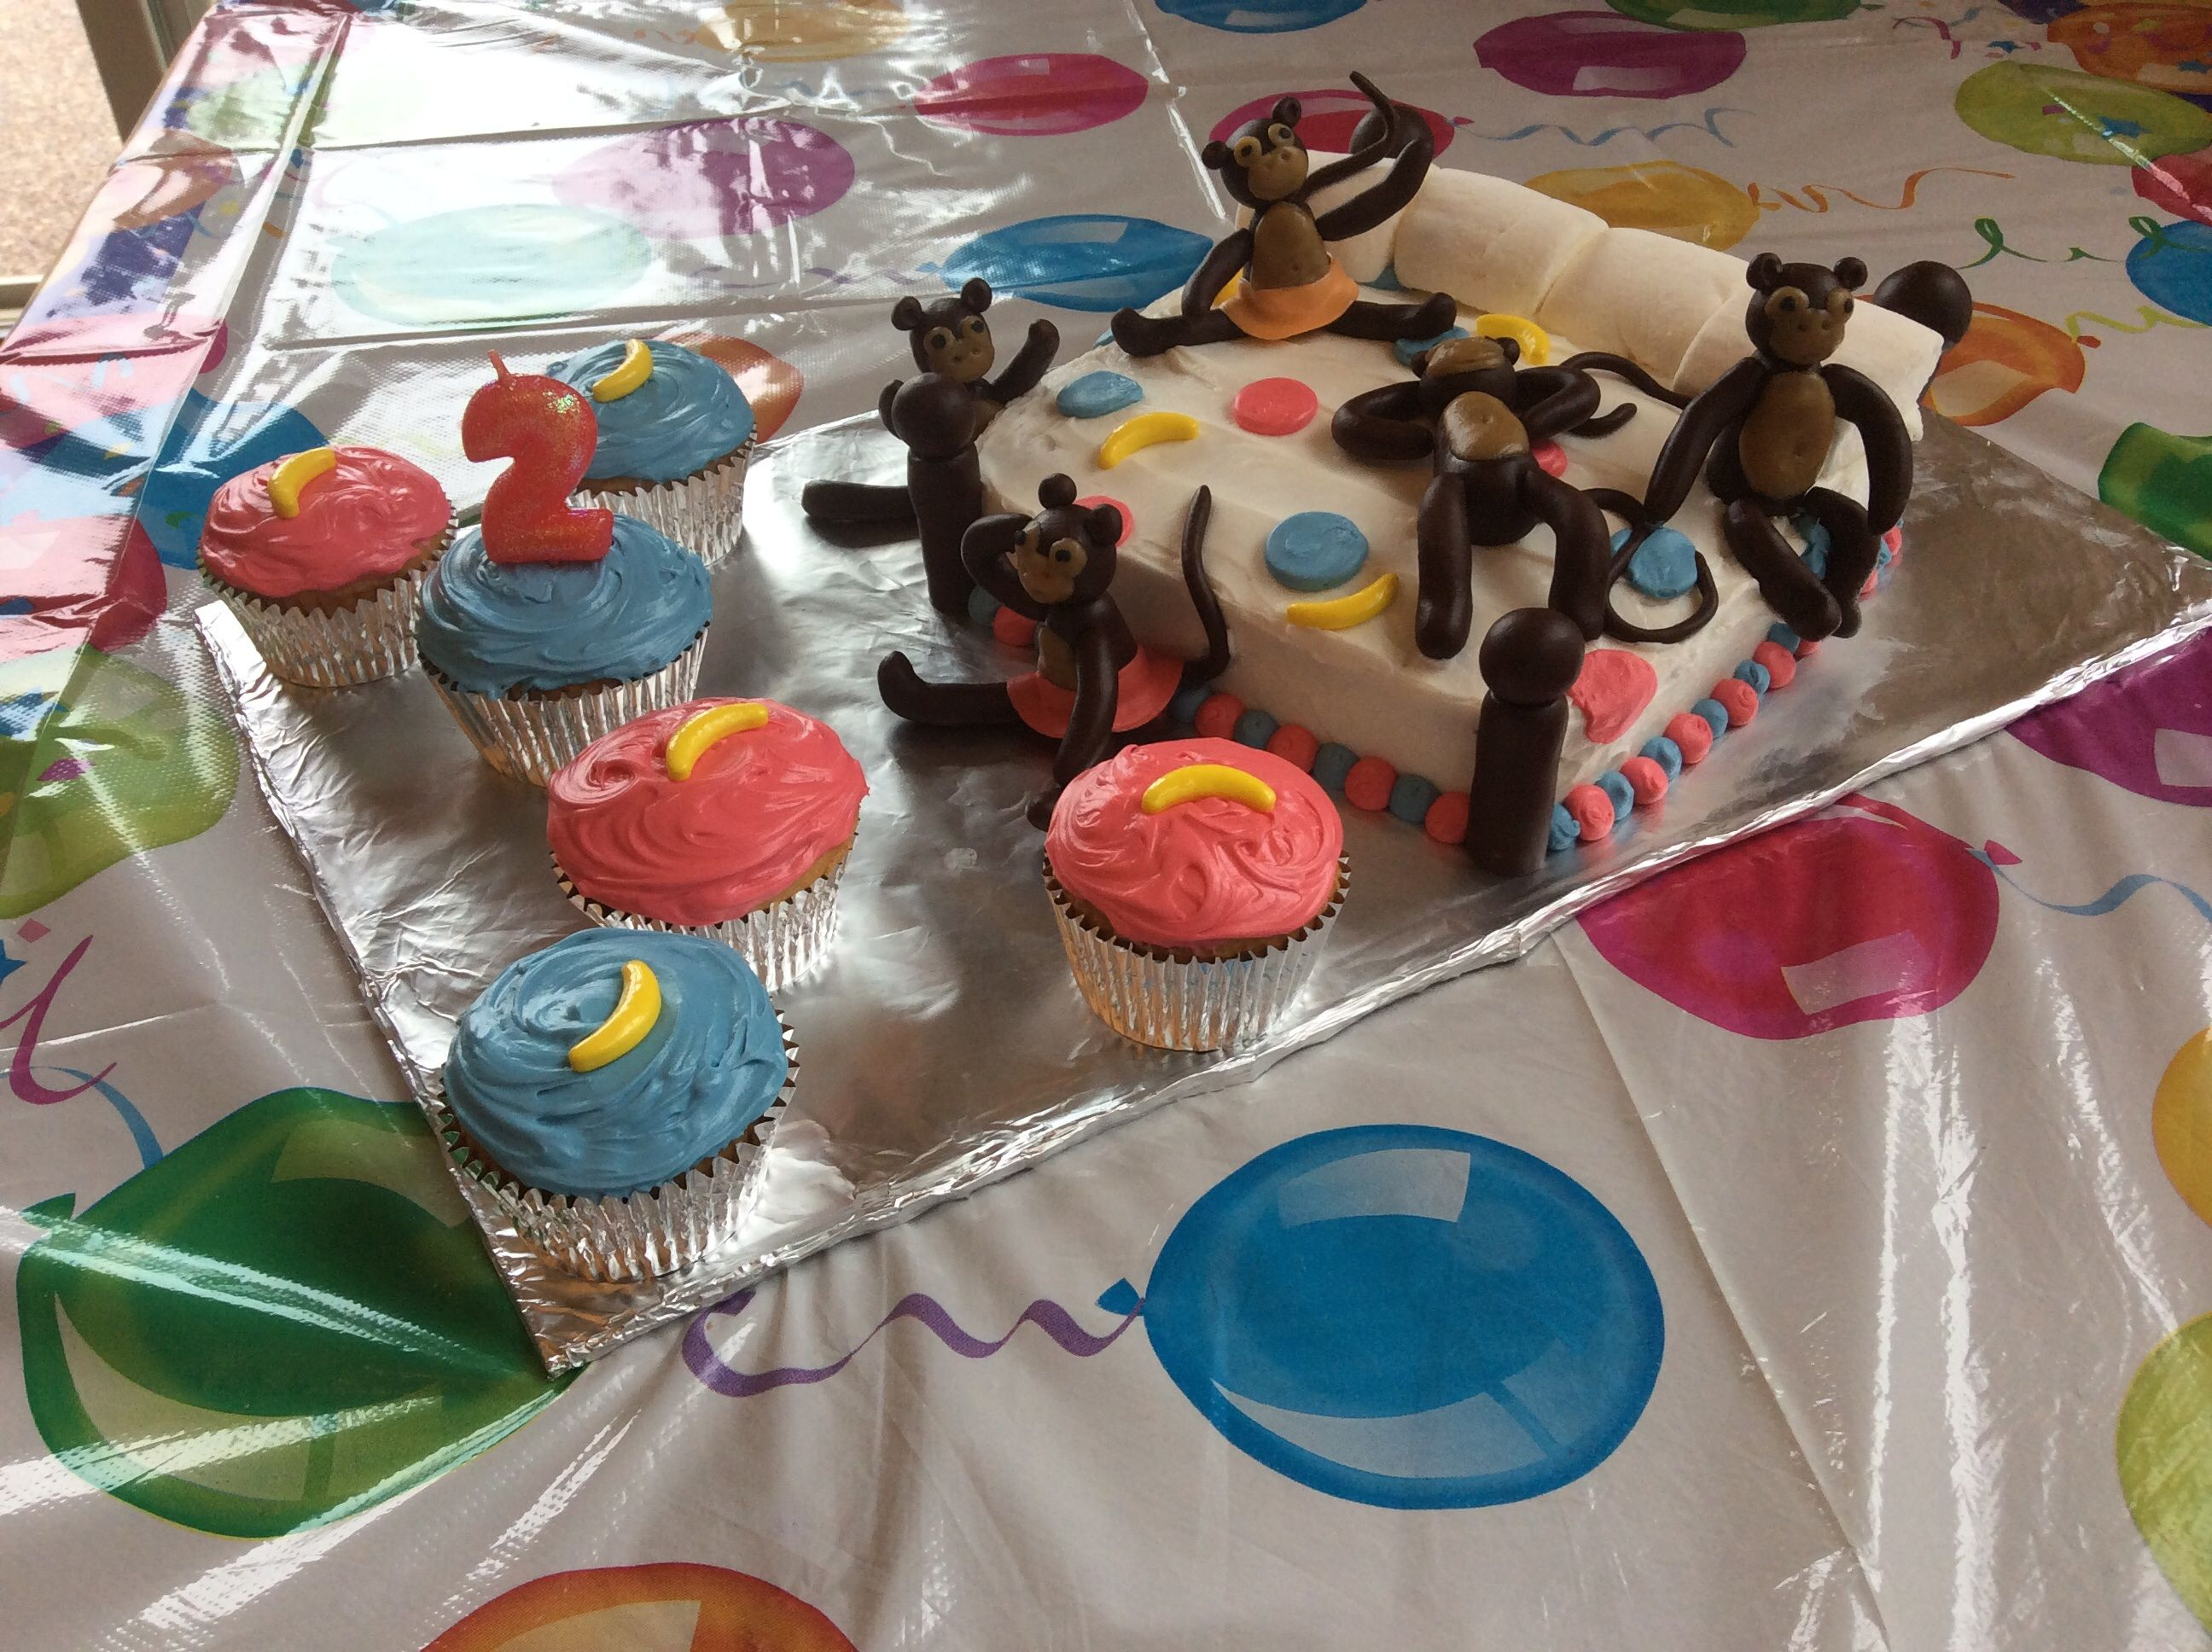 Five Little Monkeys Jumping On The Bed 2nd Birthday Cake